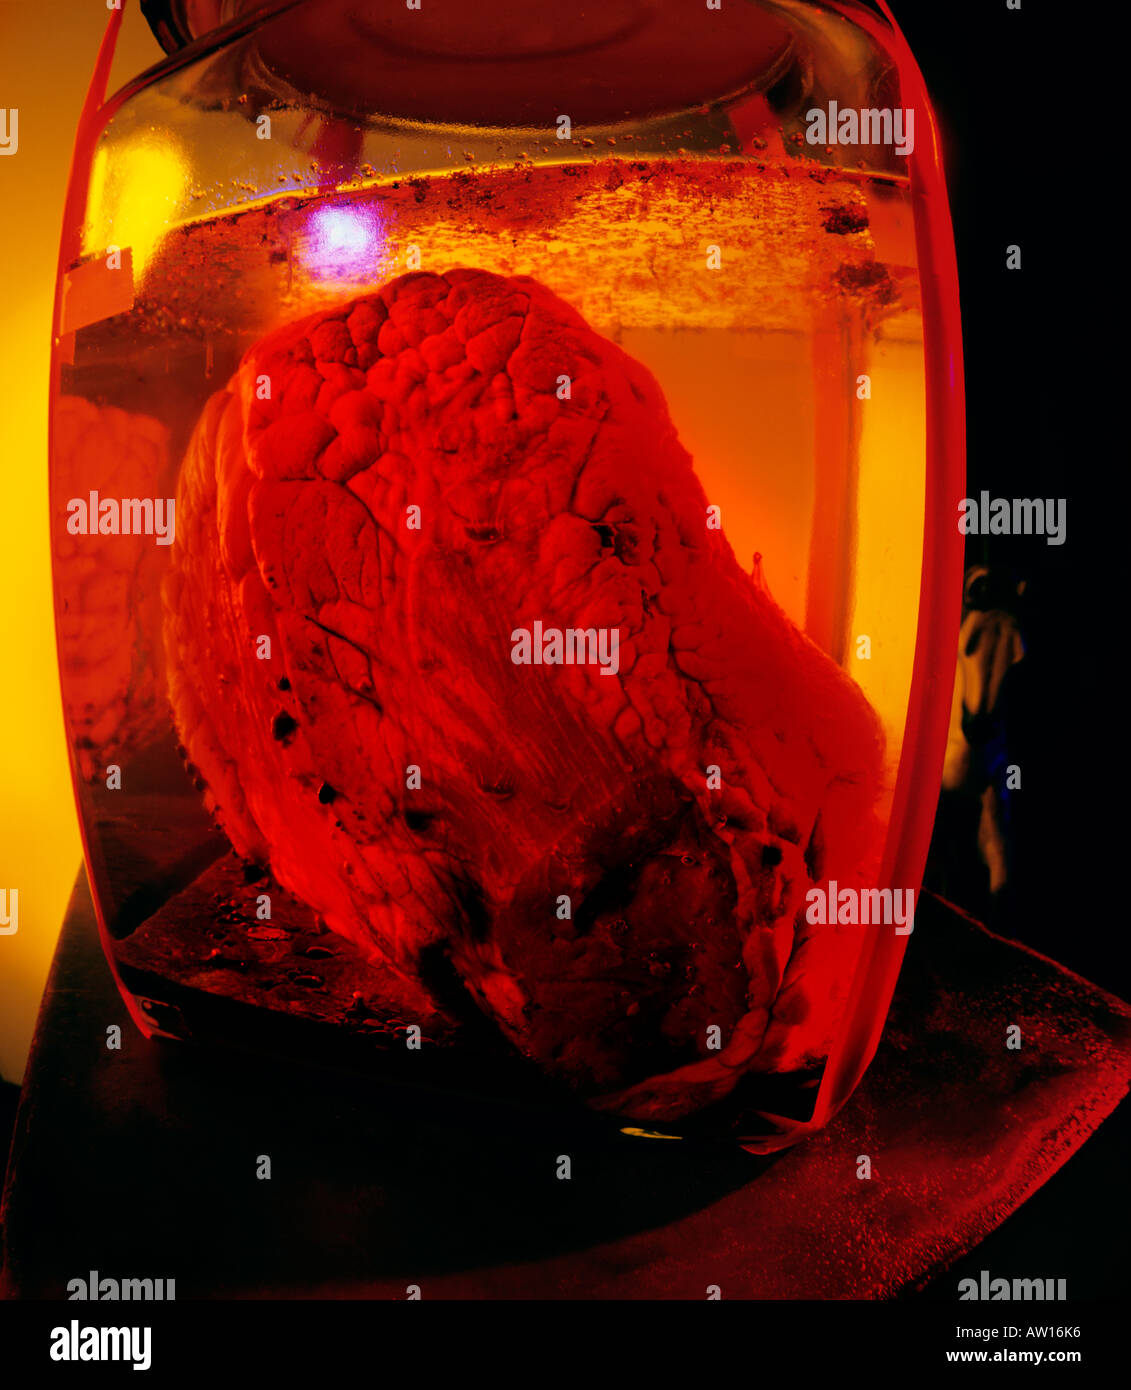 A cow's heart sitting jn a jar of fluid is illuminated eerily with hues of red and yellow. - Stock Image